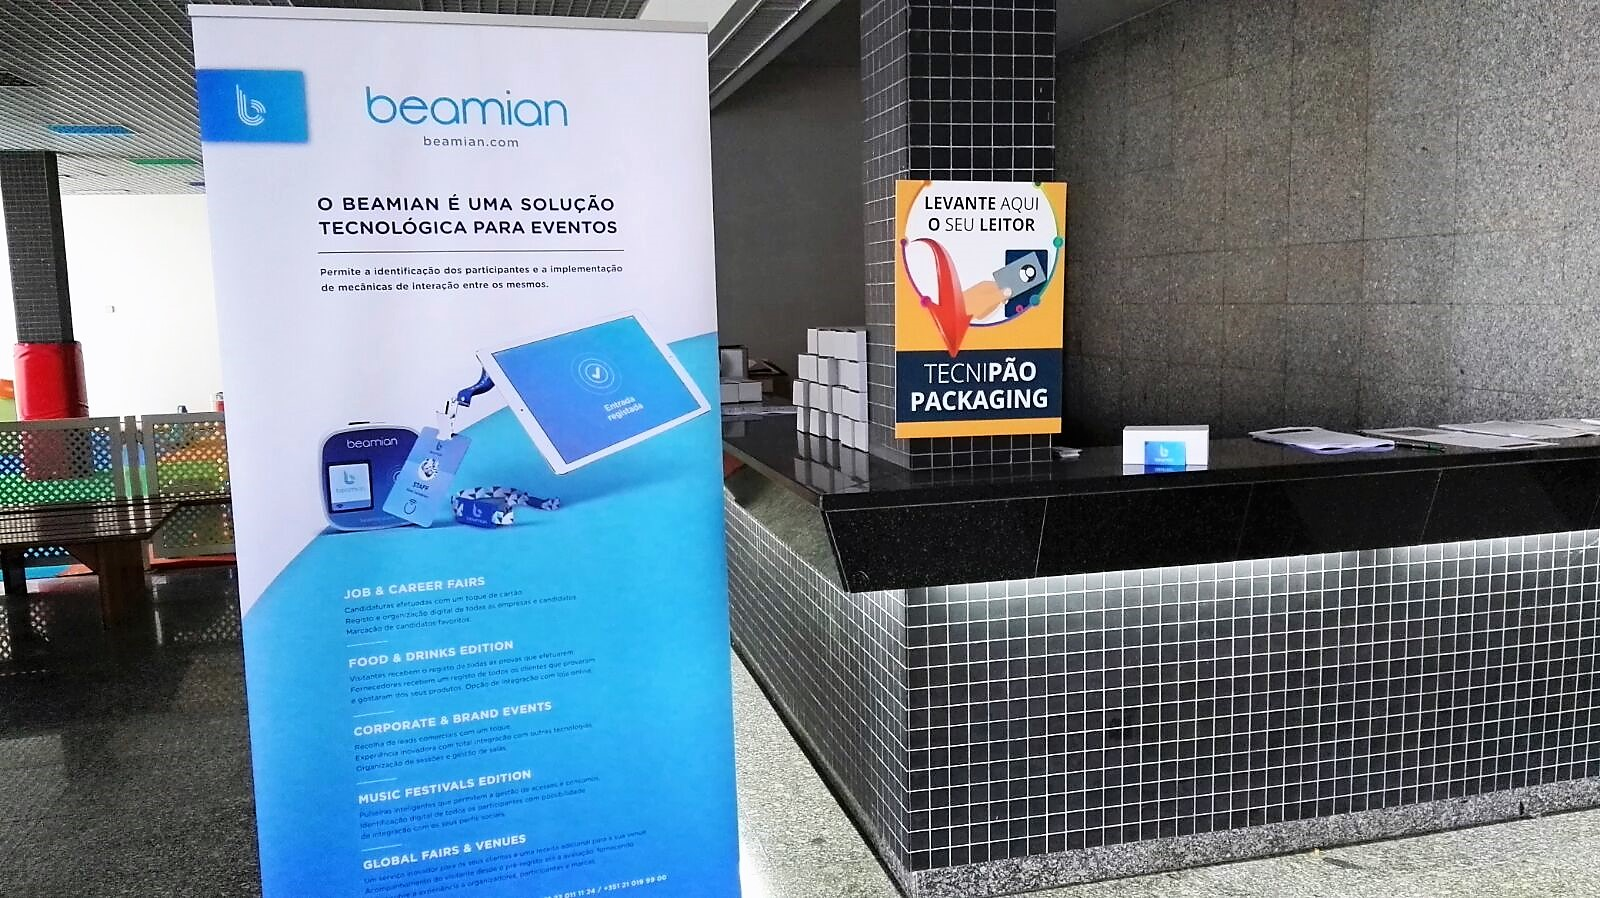 Packaging 2018 – beamian at Tecnipão